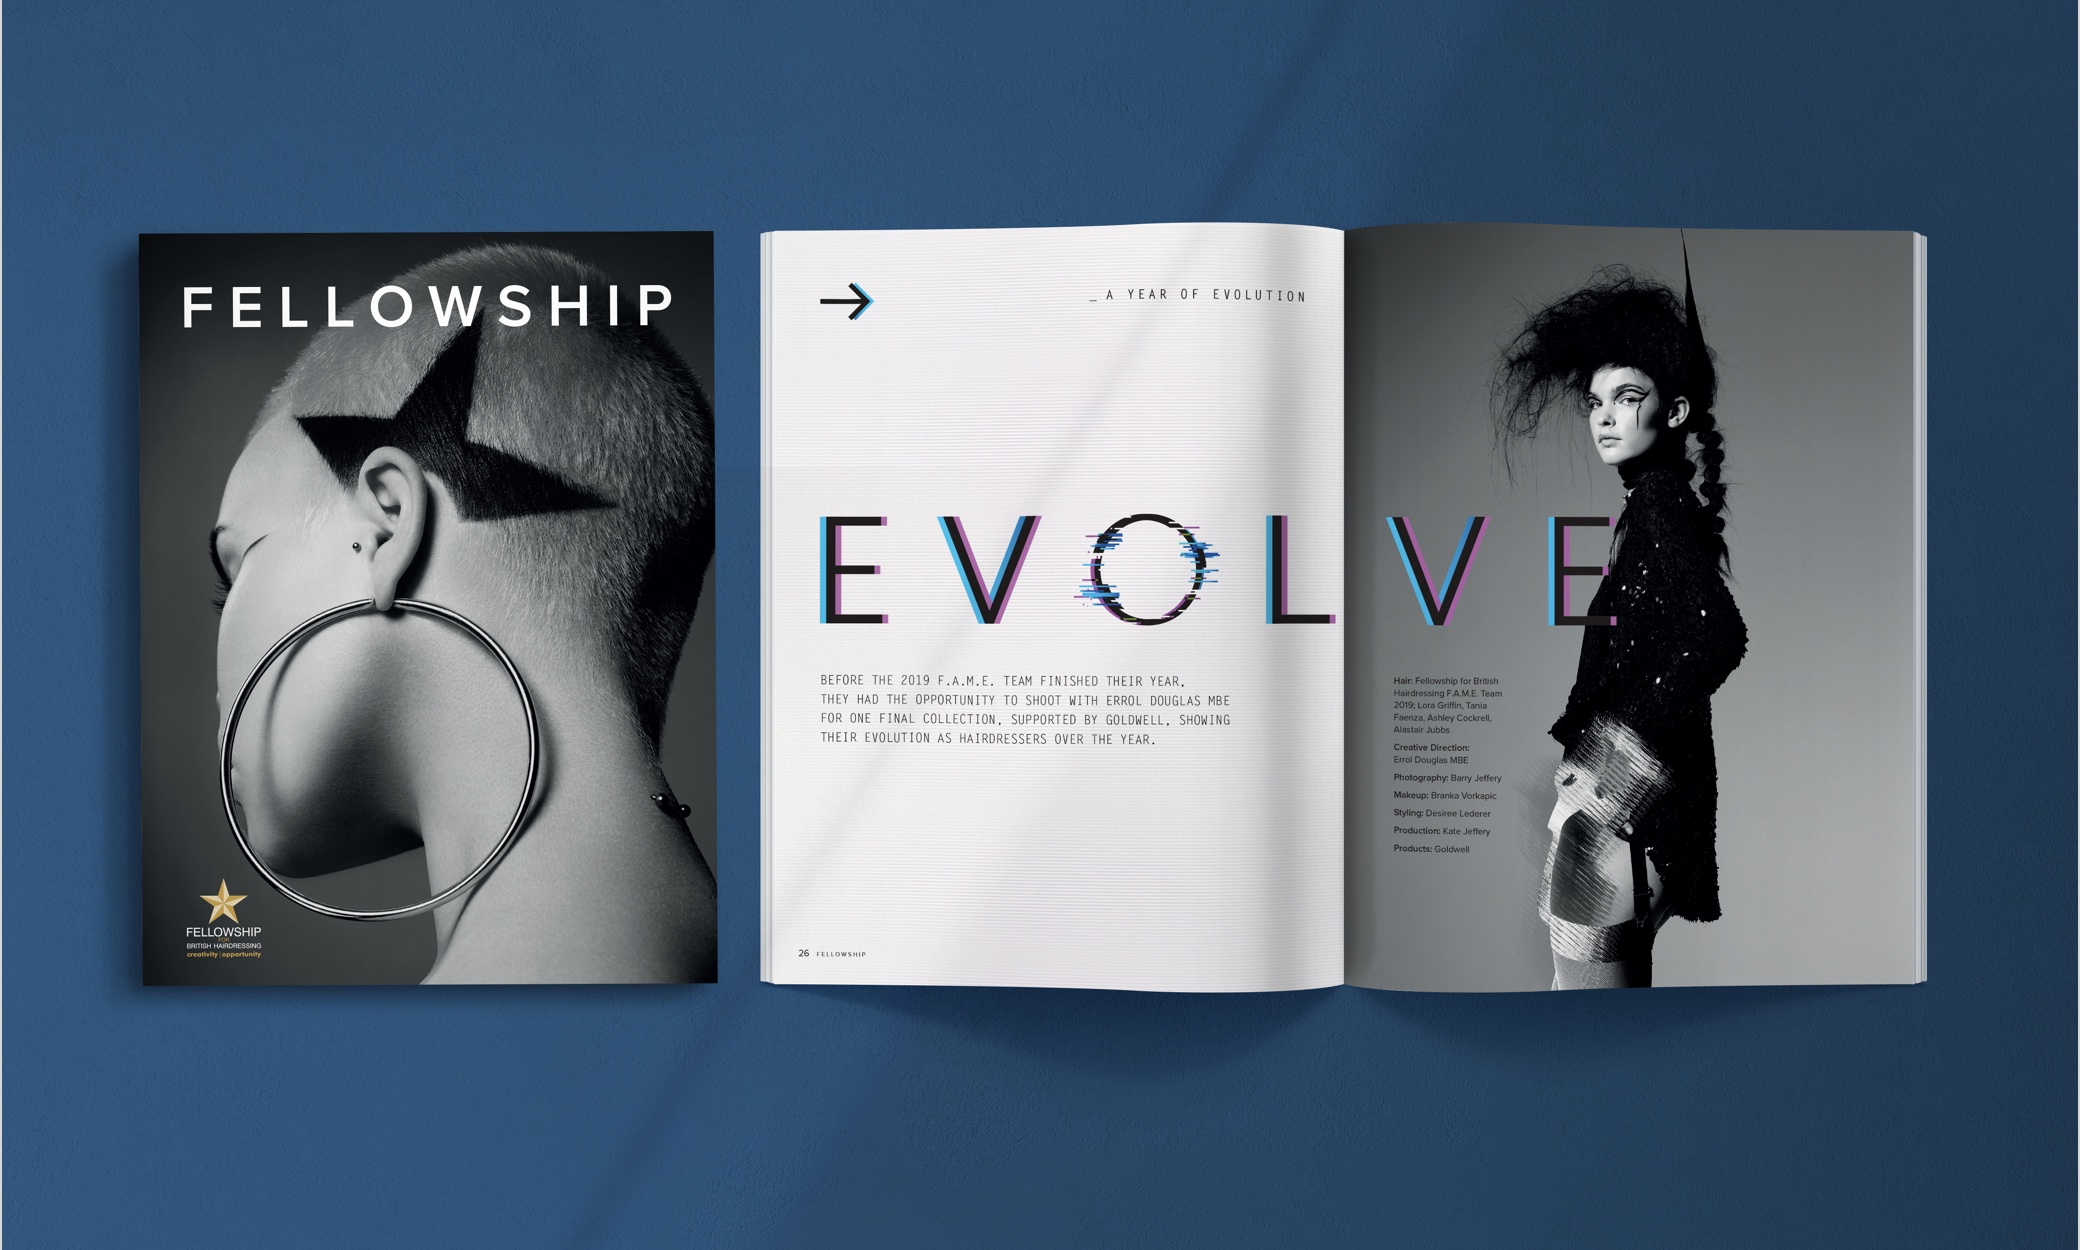 The Fellowship Magazine - Evolve